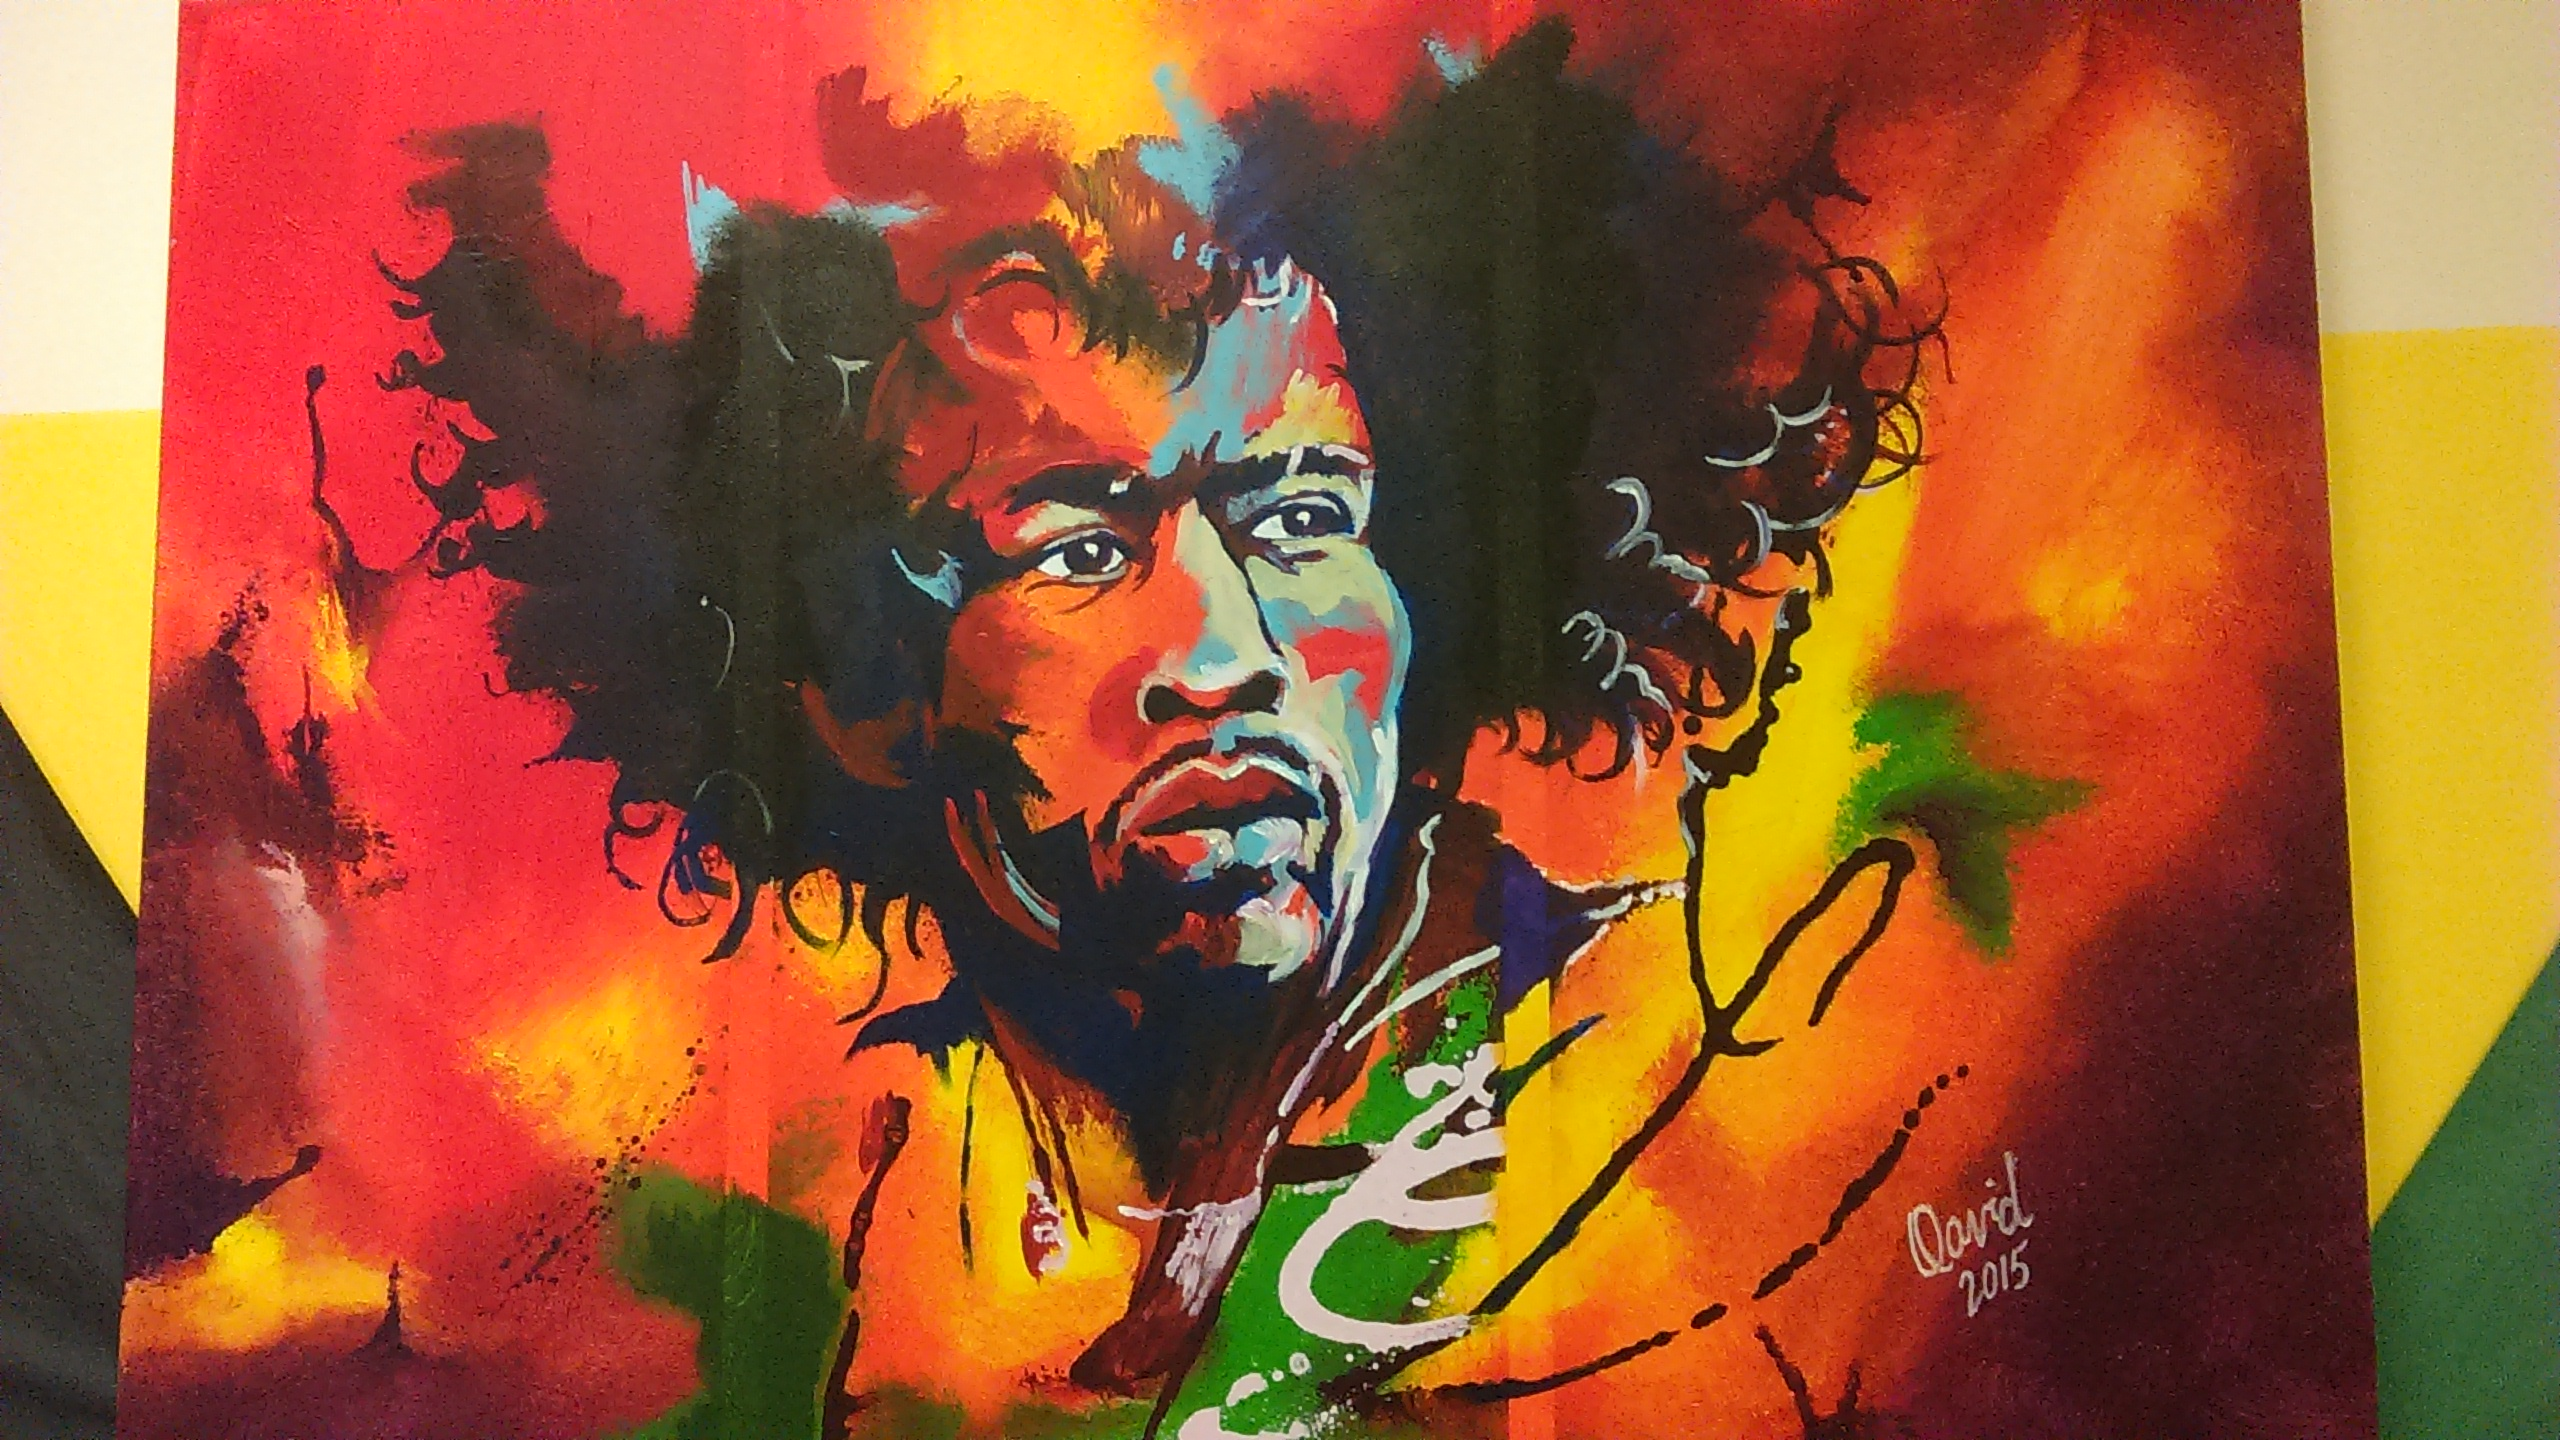 Jimmi Hendrix on fire artwork by David David - art listed for sale on Artplode